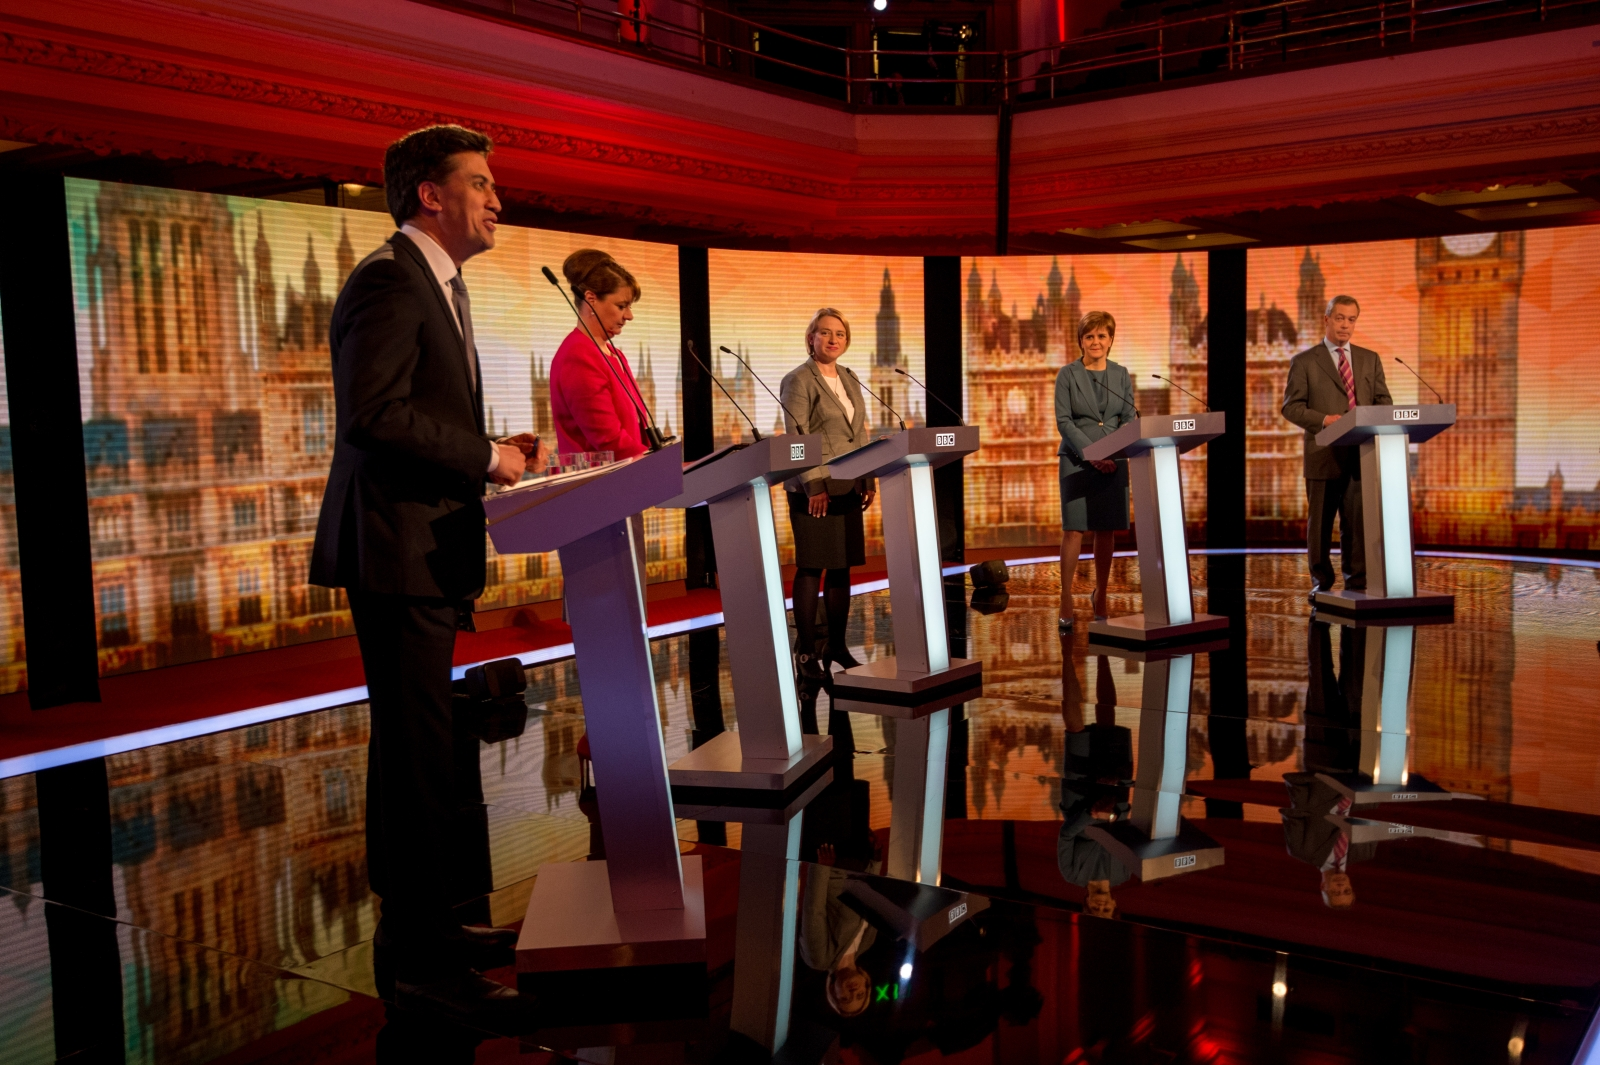 BBC TV debate